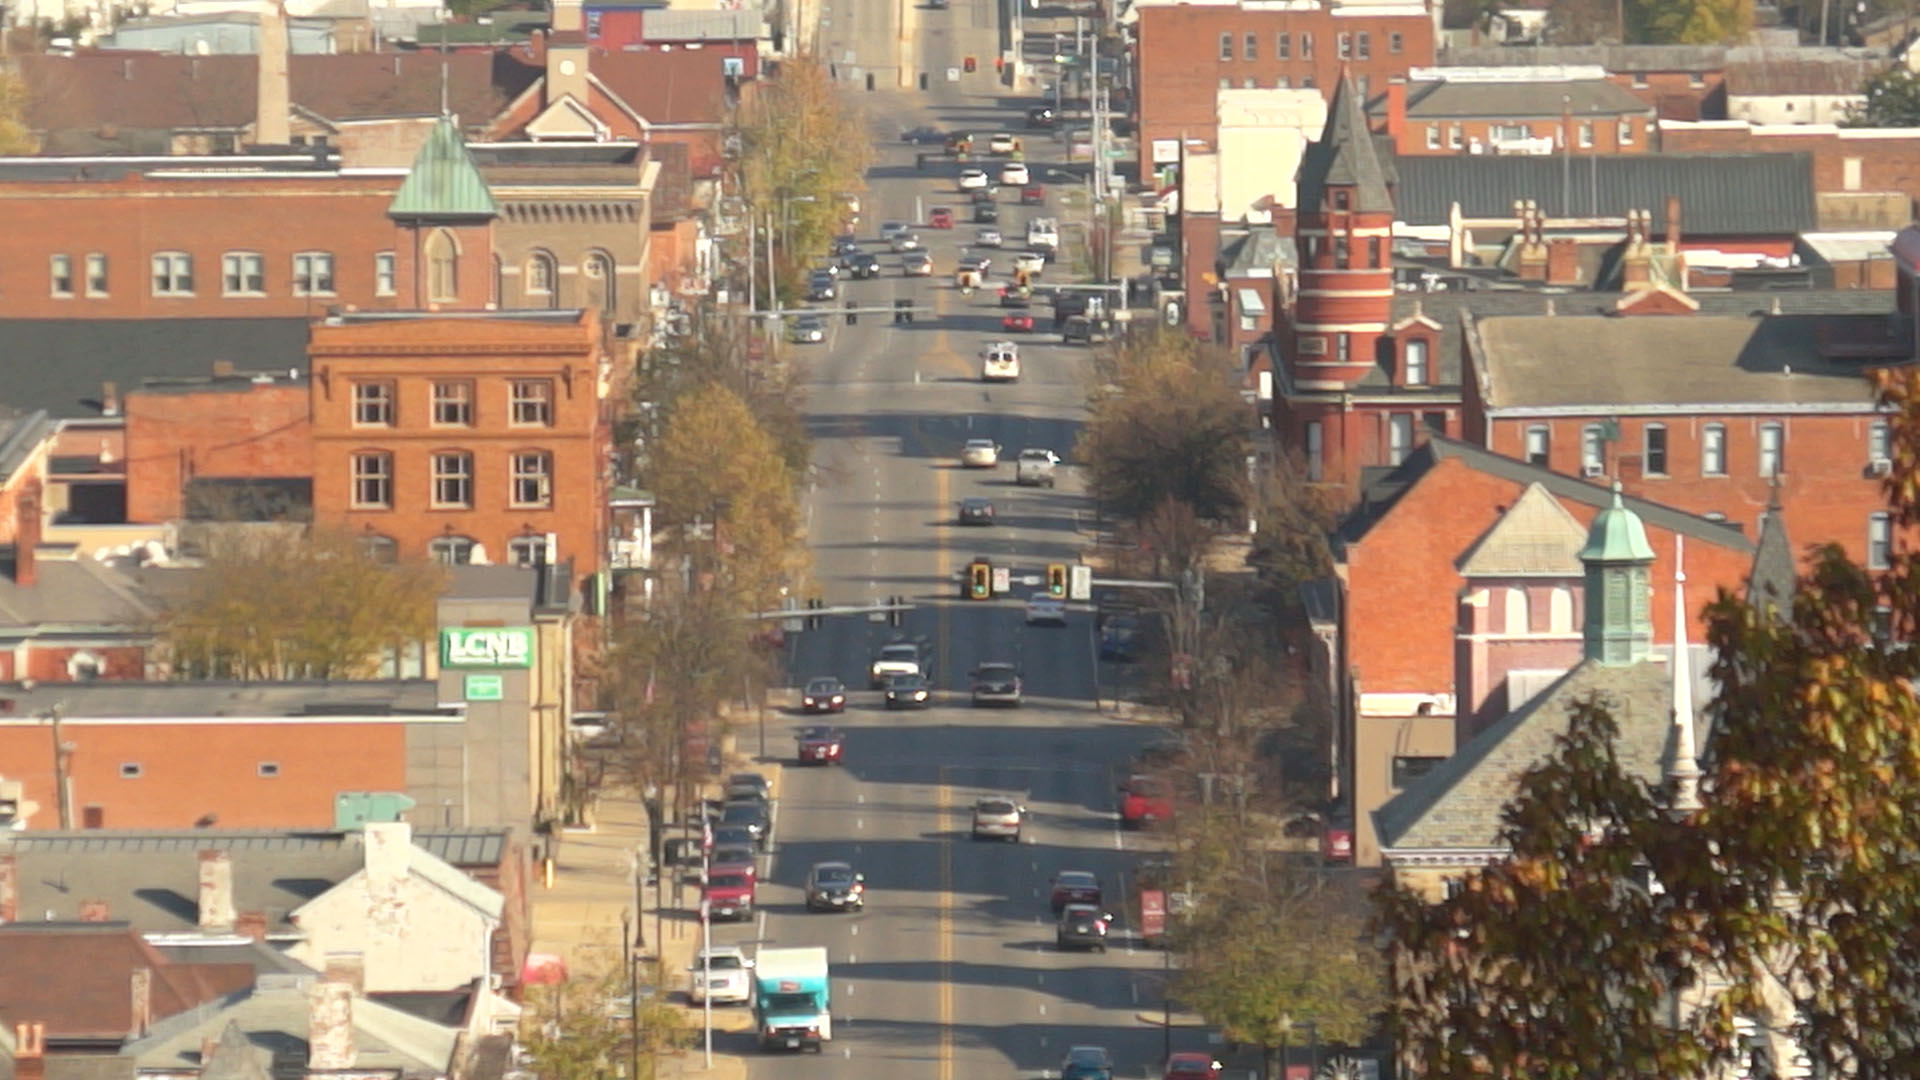 On the streets of Chillicothe, Ohio: 'Shooting heroin is like drinking beer'